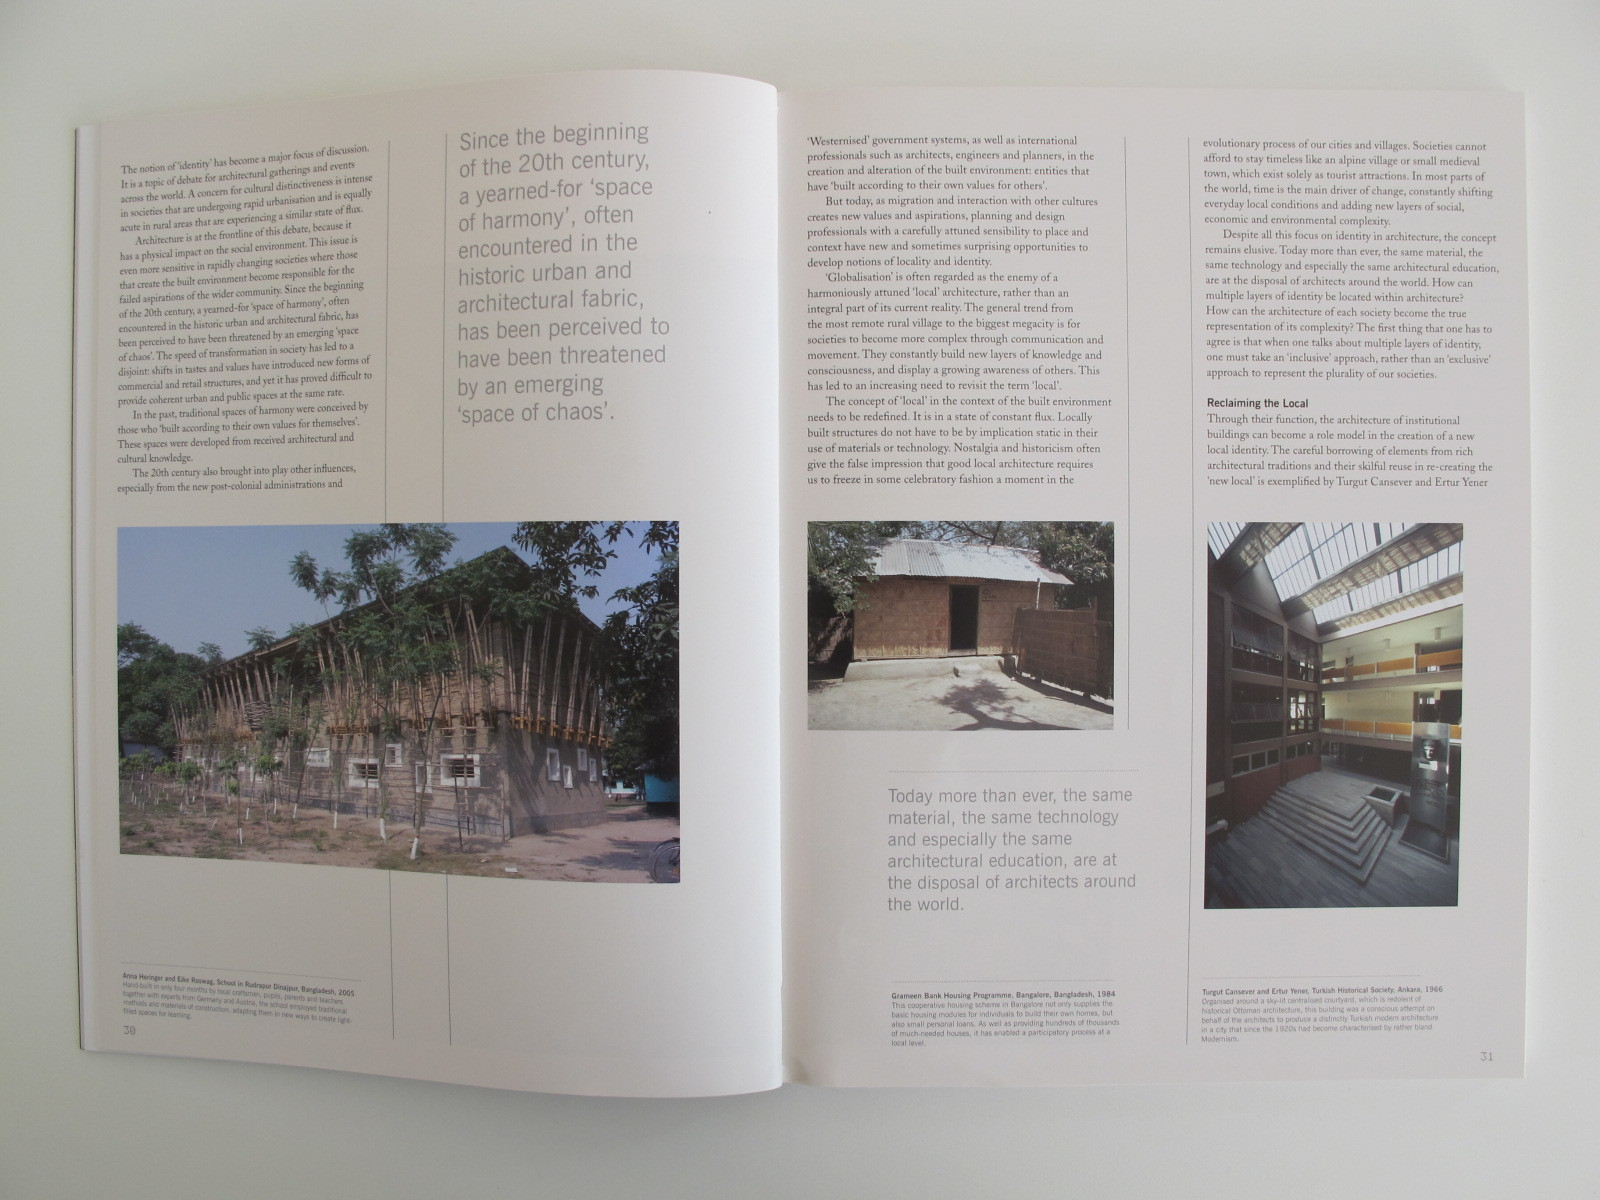 Architectural Design: Human Experience and Place - Sustaining Identity